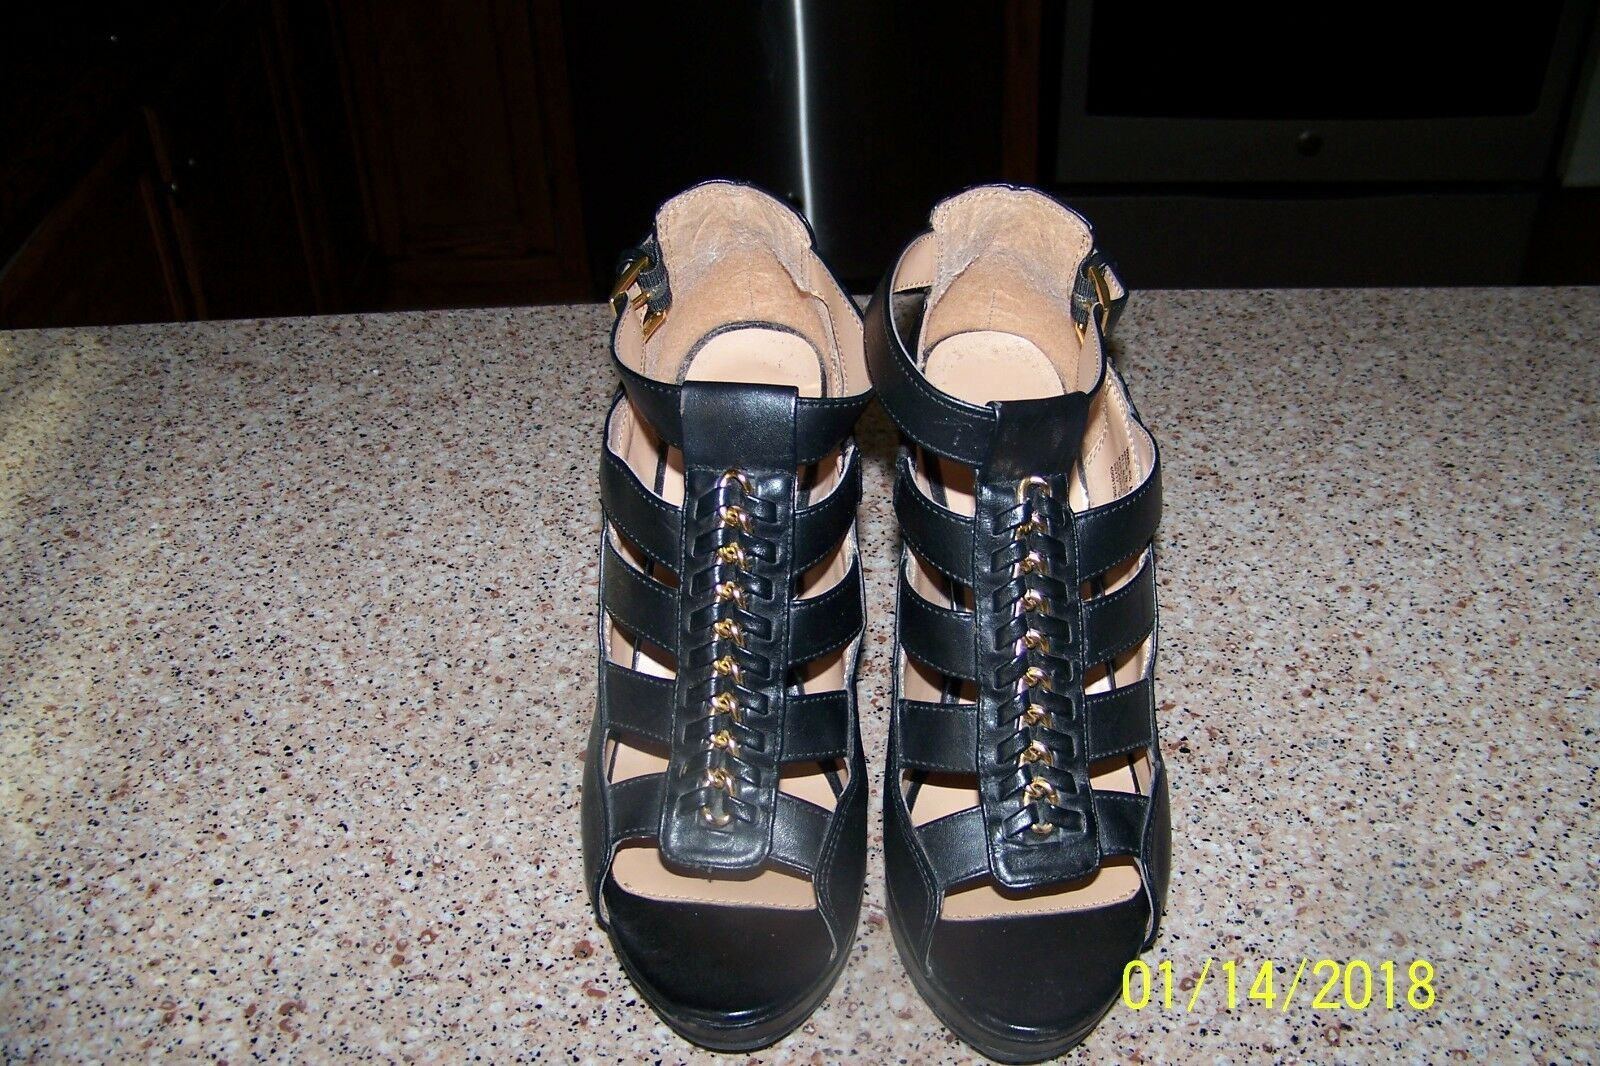 Gentleman/Lady Candies Women Shoes New Listing crowd Affordable King of the crowd Listing 989af7